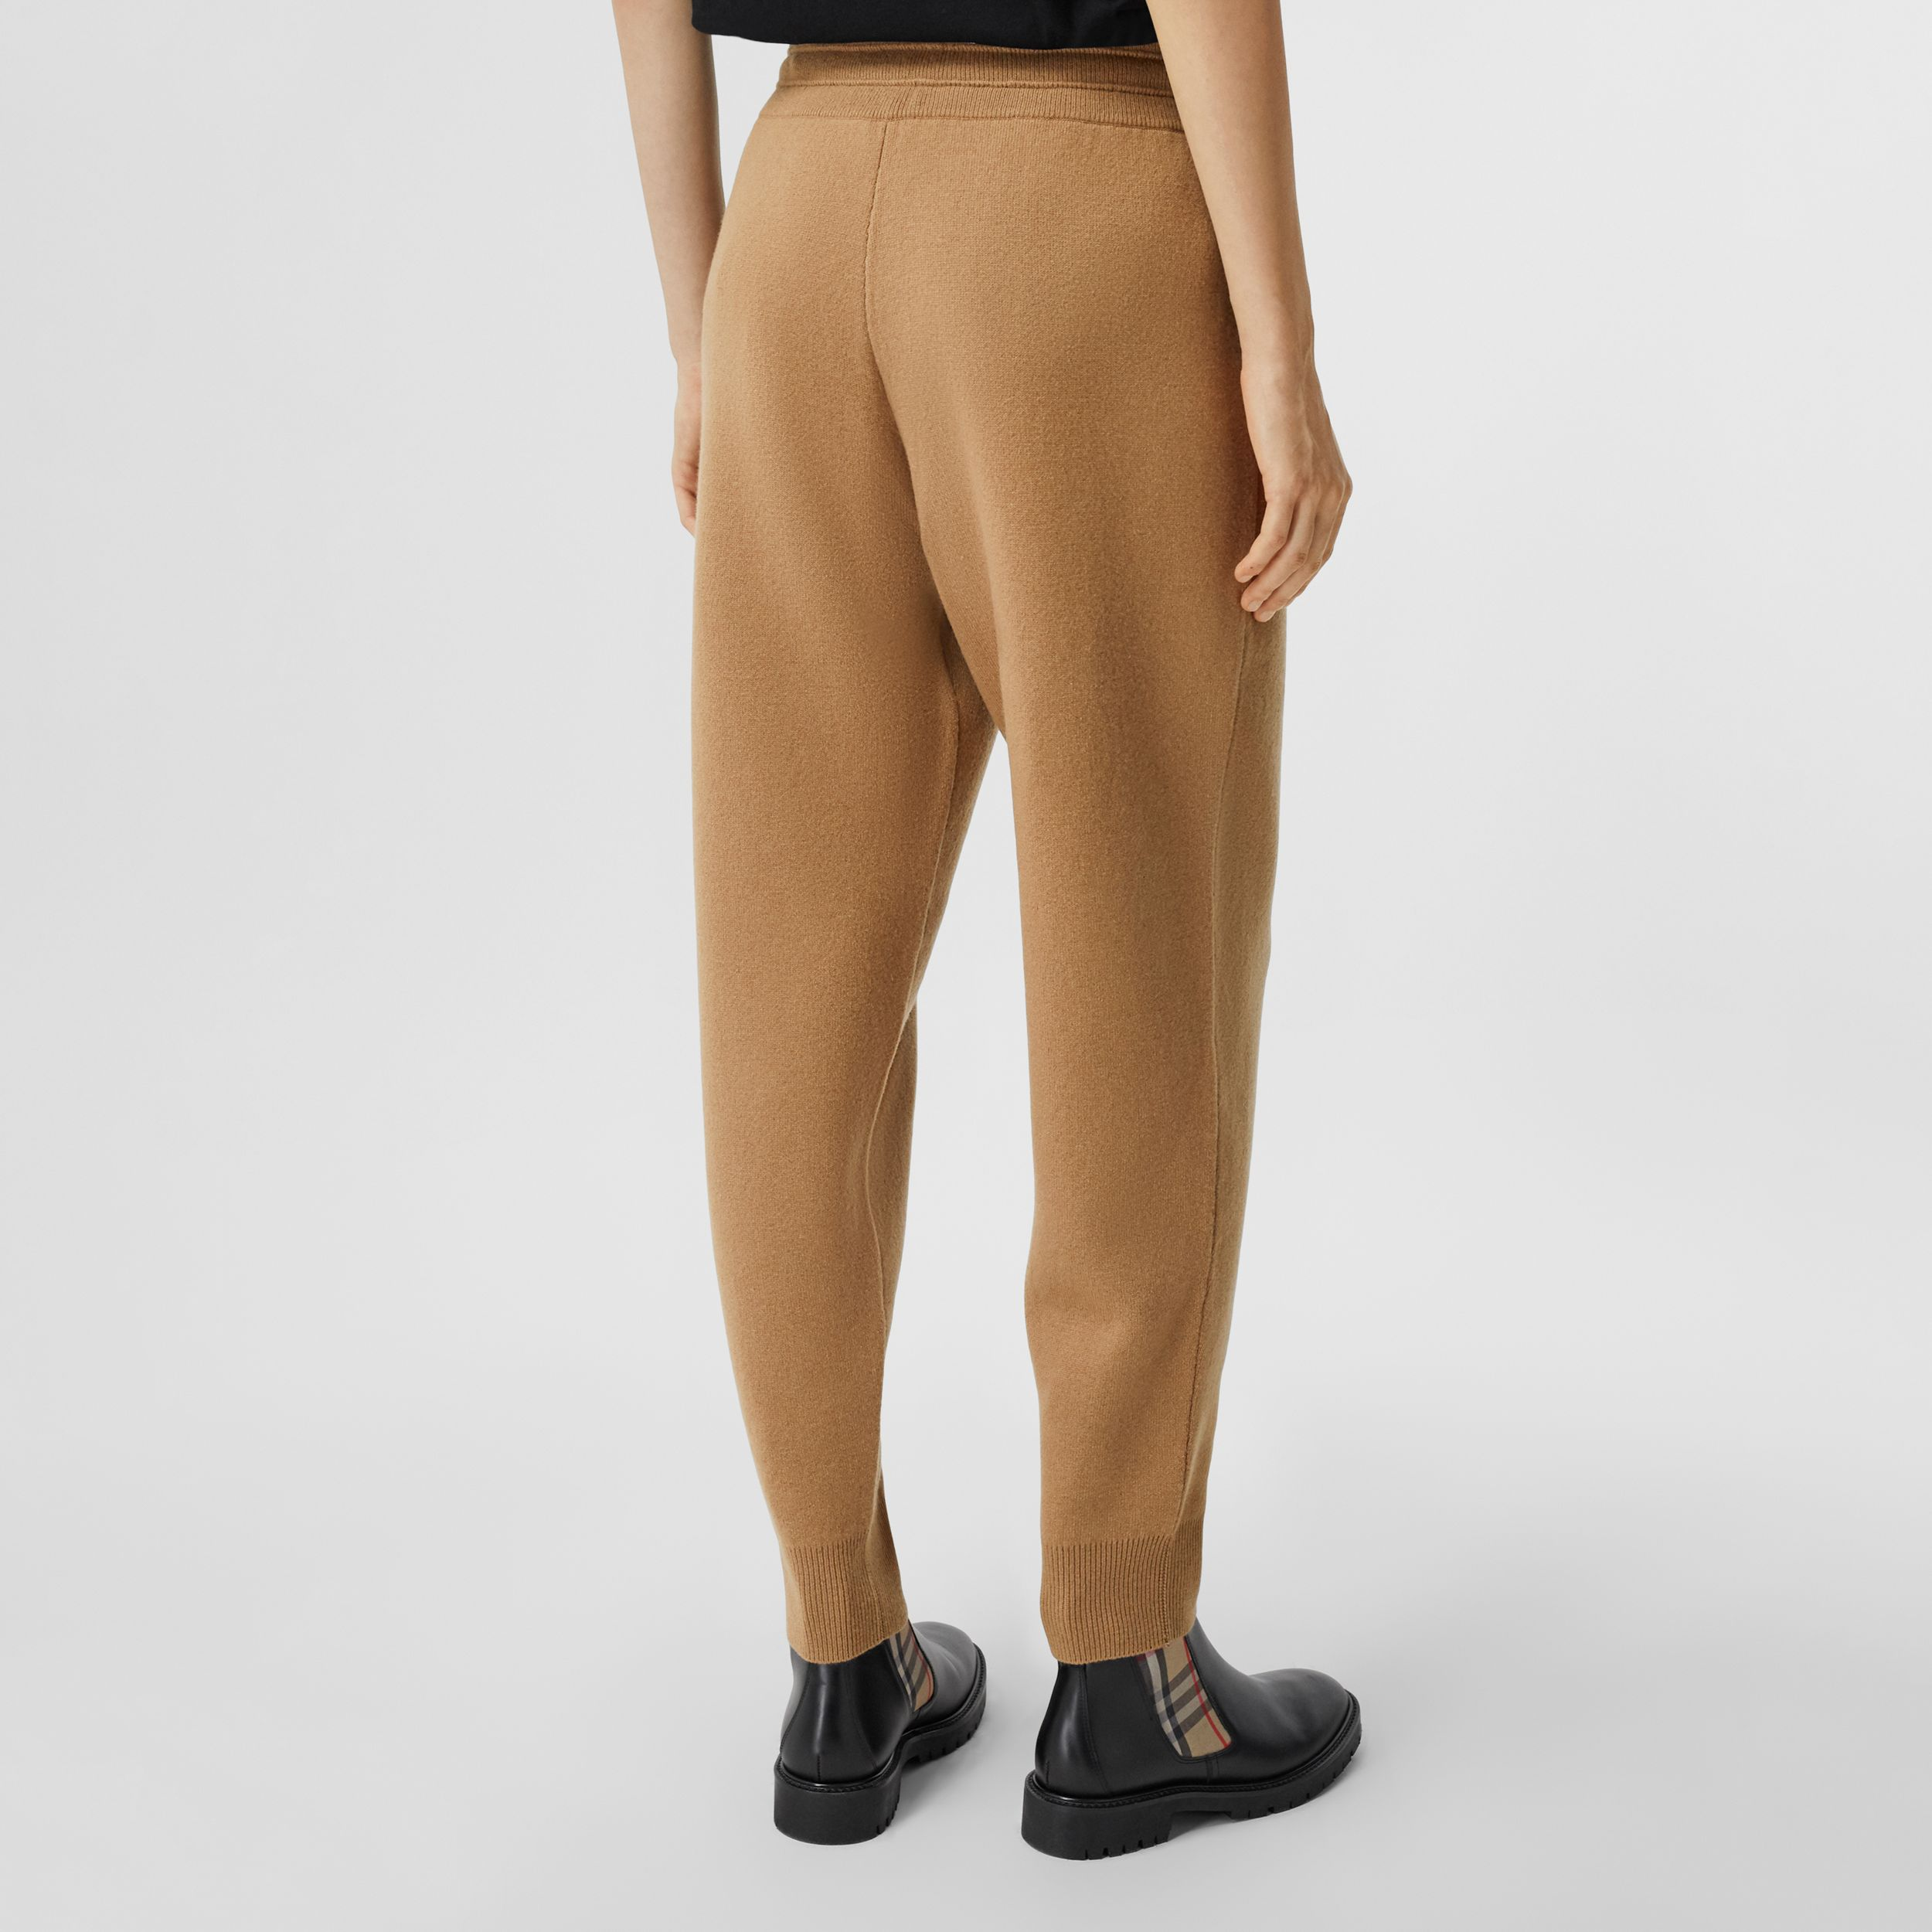 Monogram Motif Cashmere Blend Jogging Pants in Camel - Women | Burberry - 3